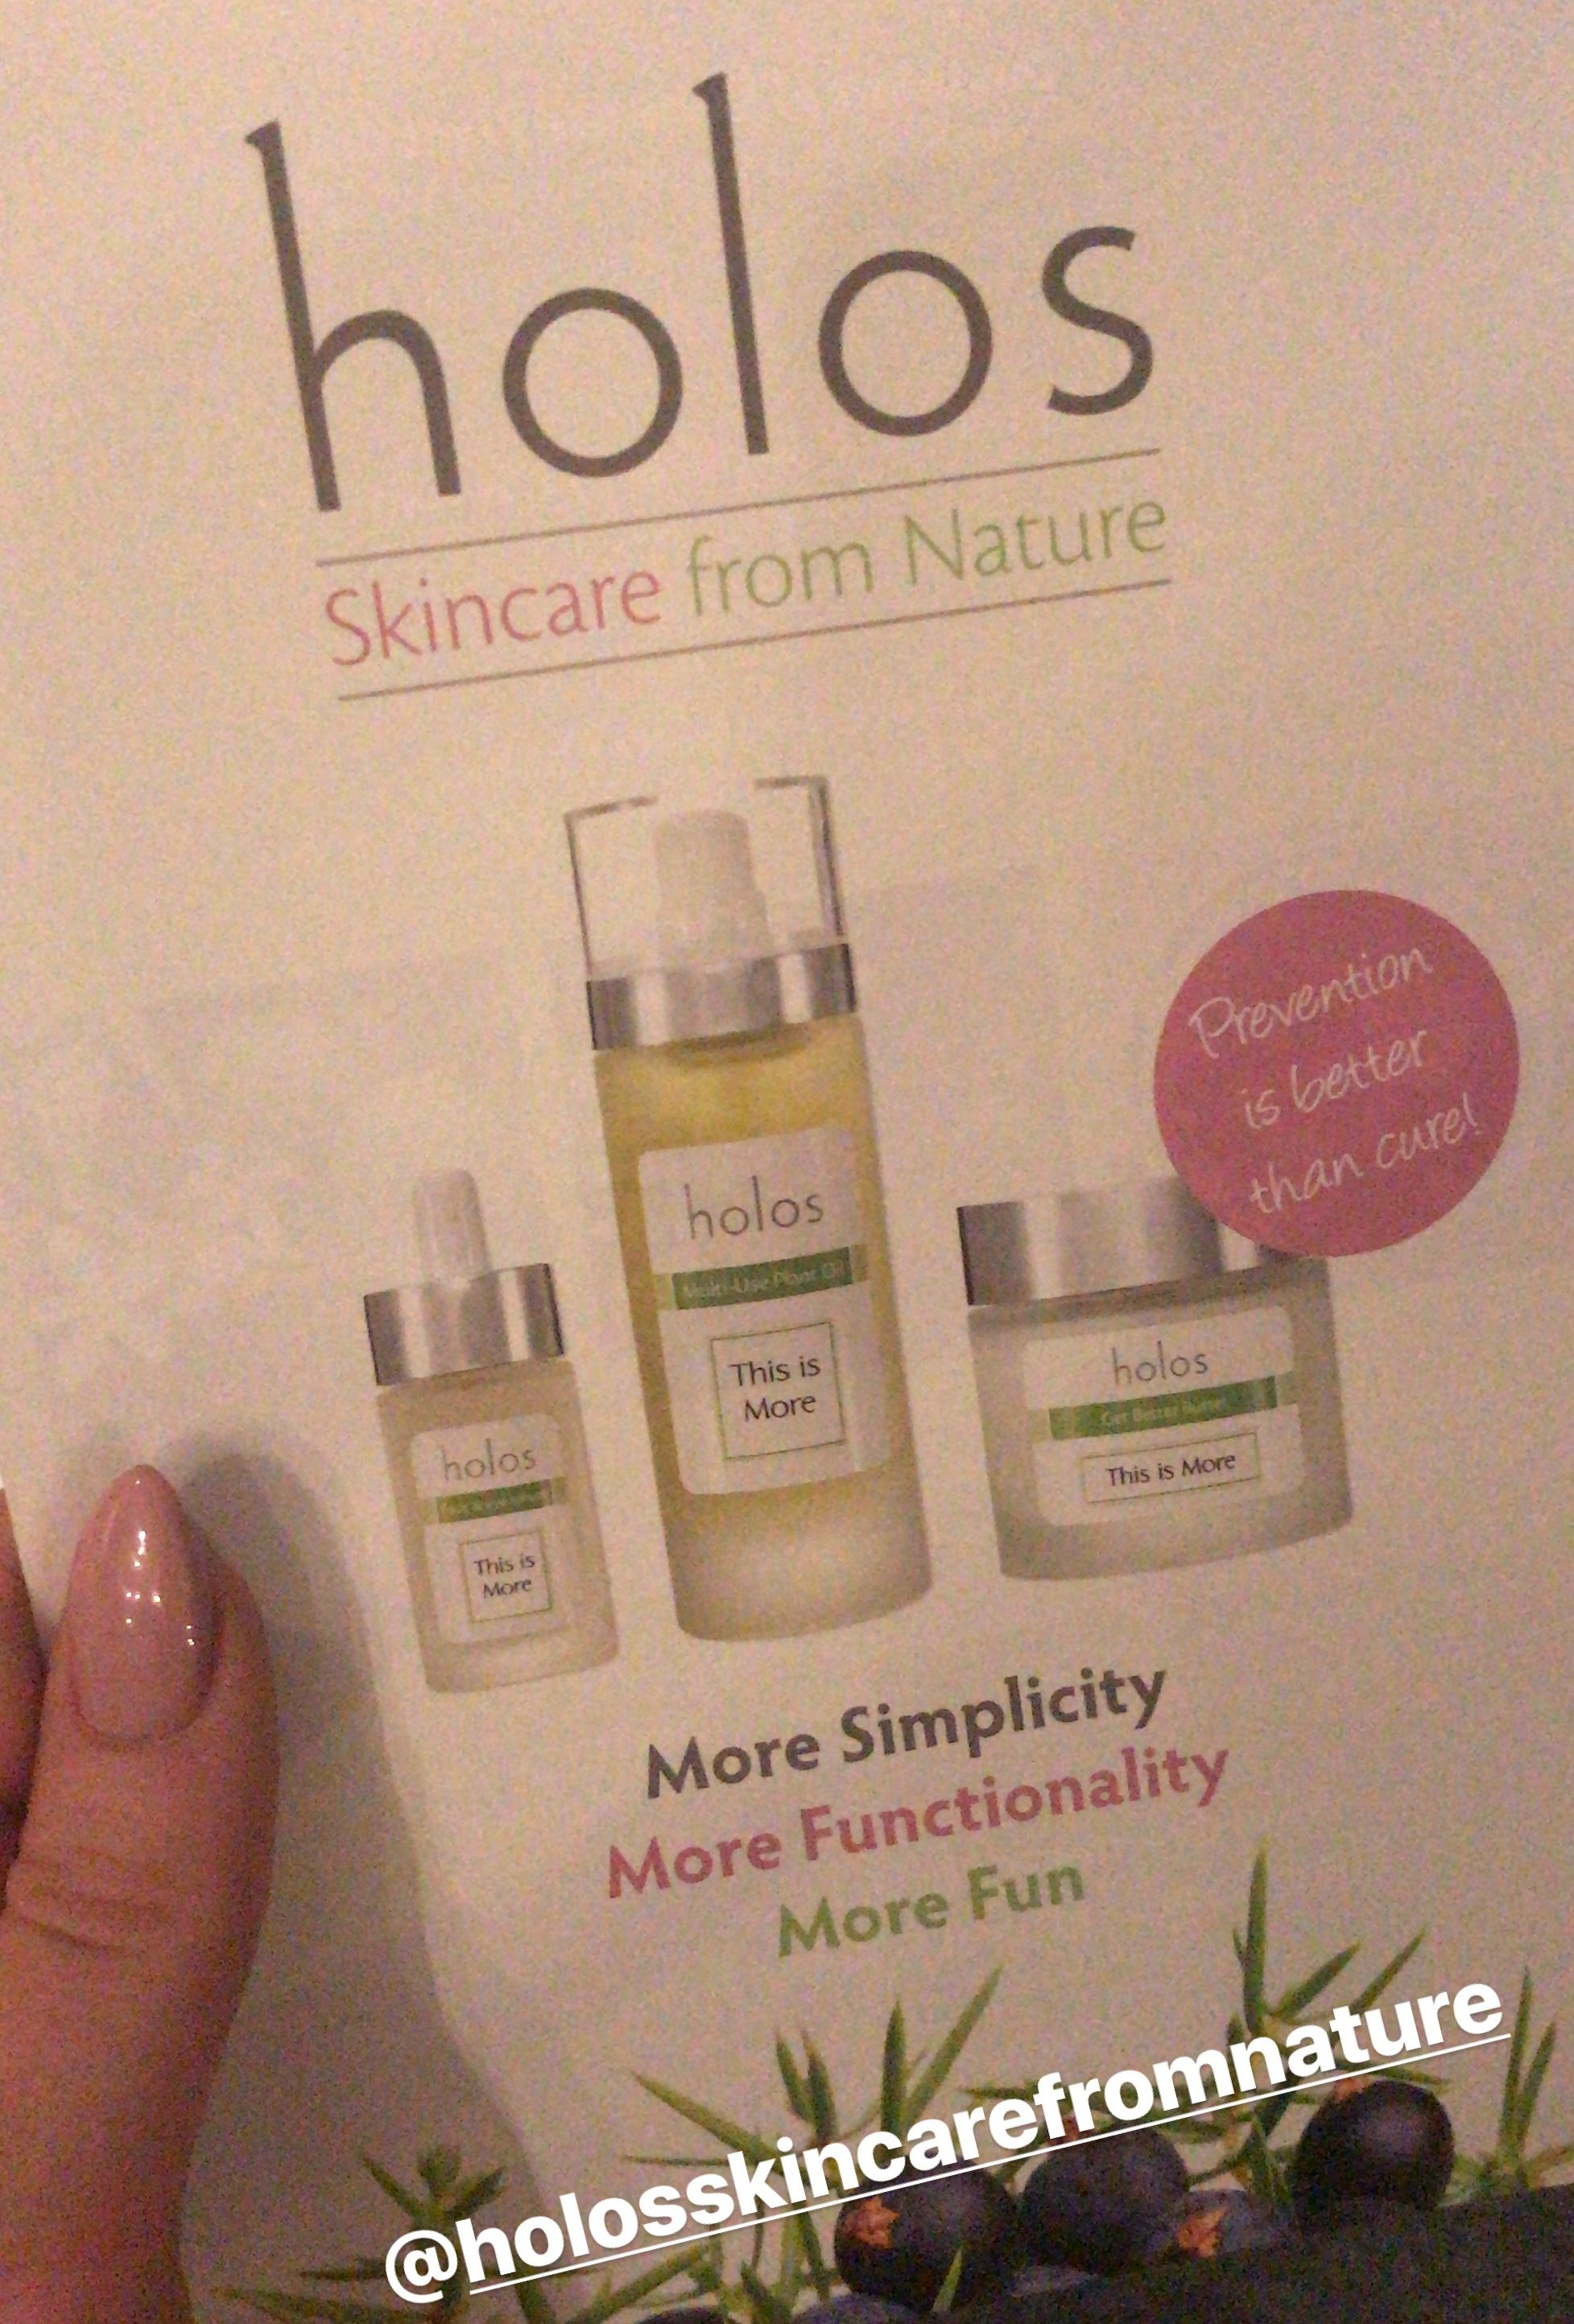 Holos Skincare Wexford